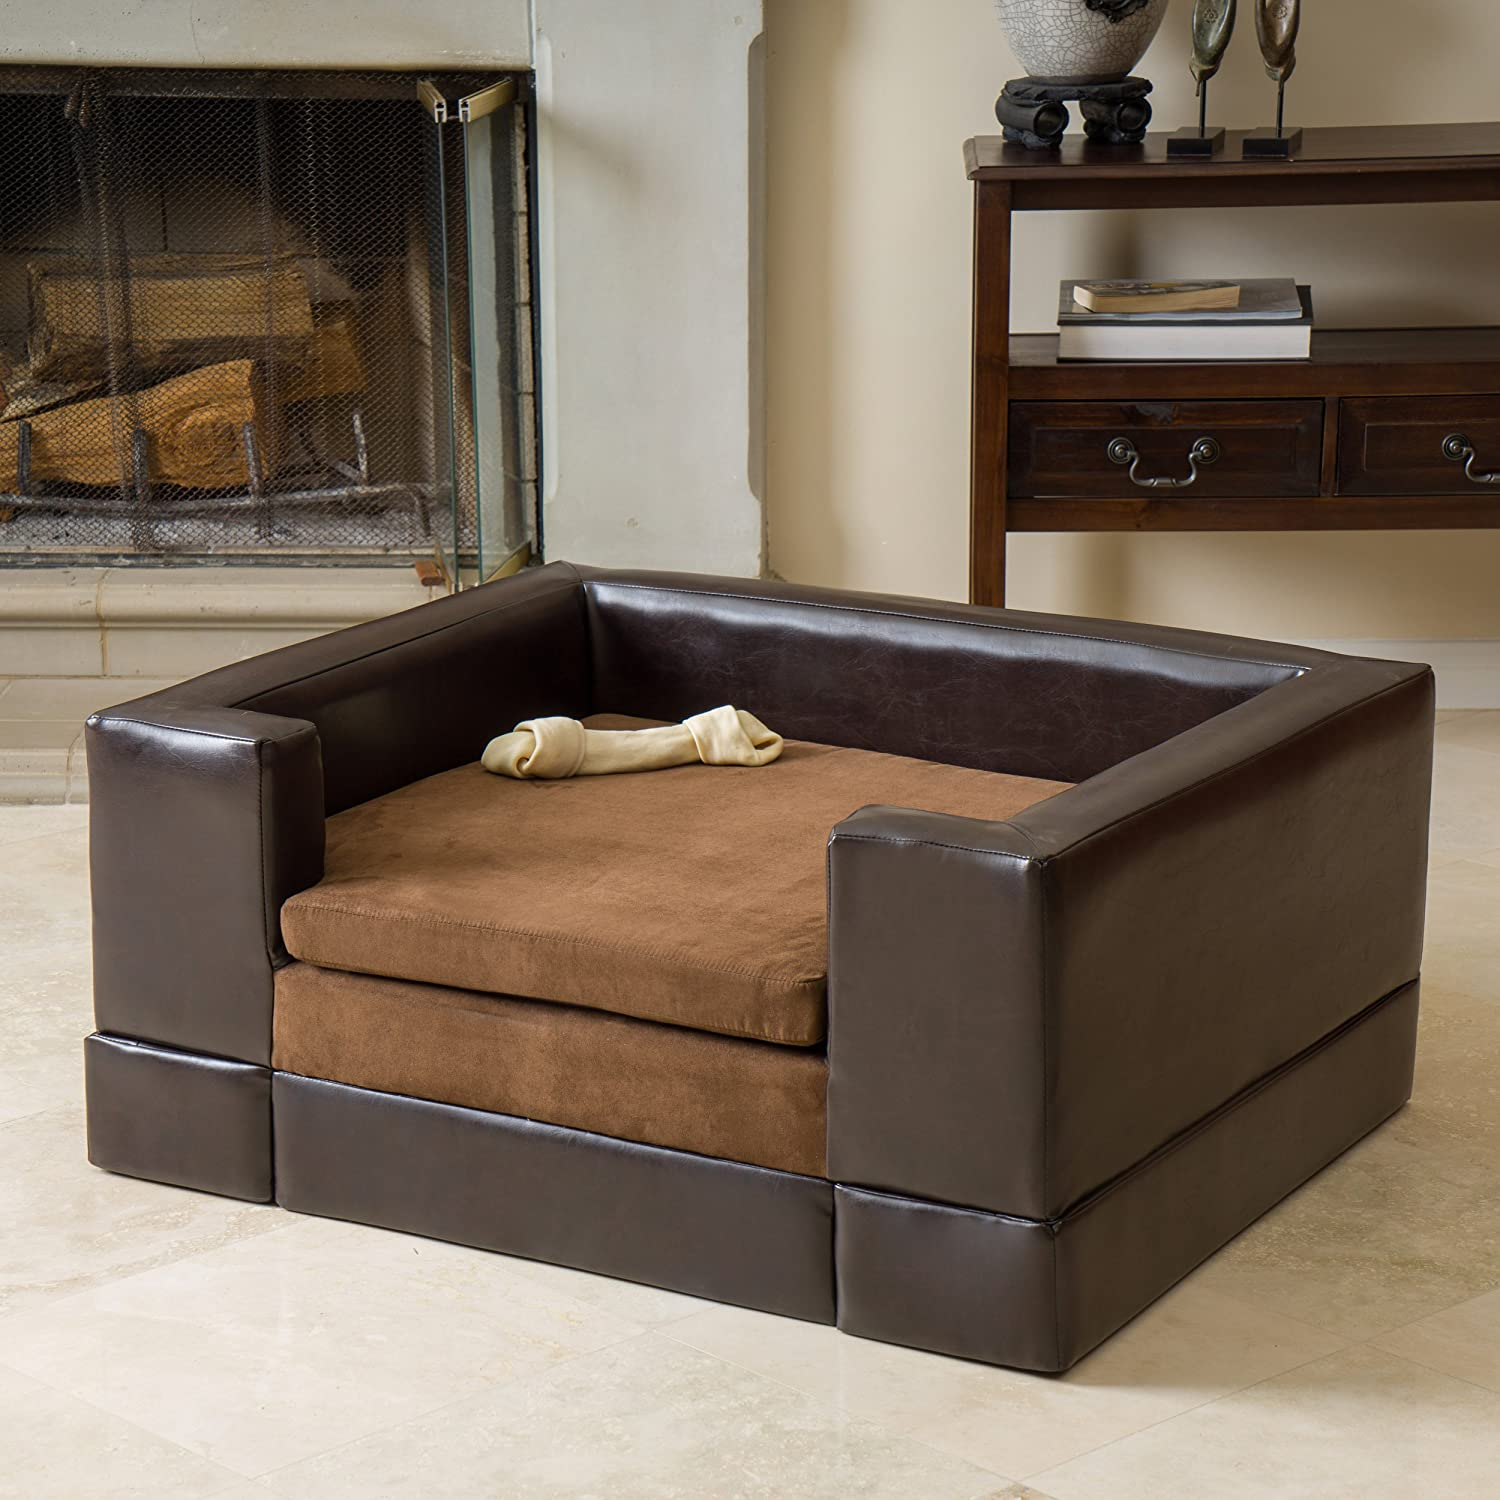 Amazon.com: Rover Large Chocolate Brown Leather Pet Sofa Bed: Health ...